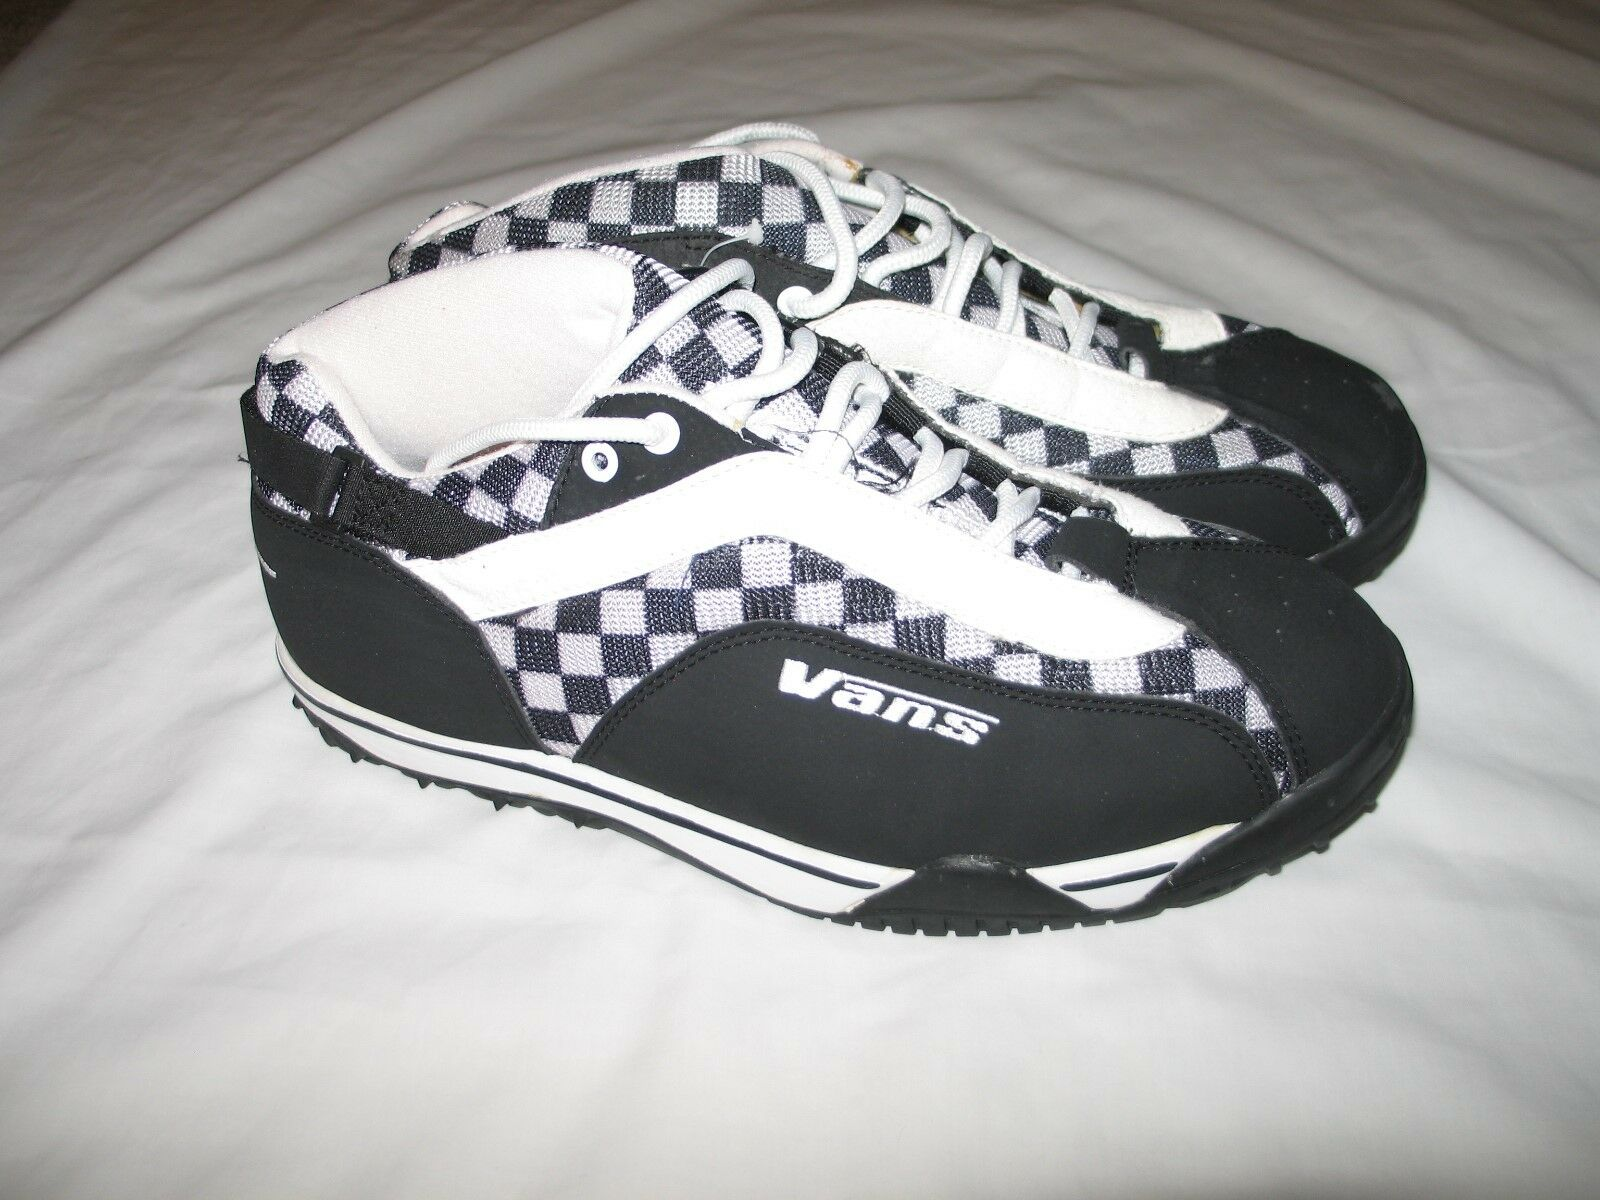 1997 VANS Dualist SPD Mtn. Biking Collector's Shoes Black & White Checker RARE!